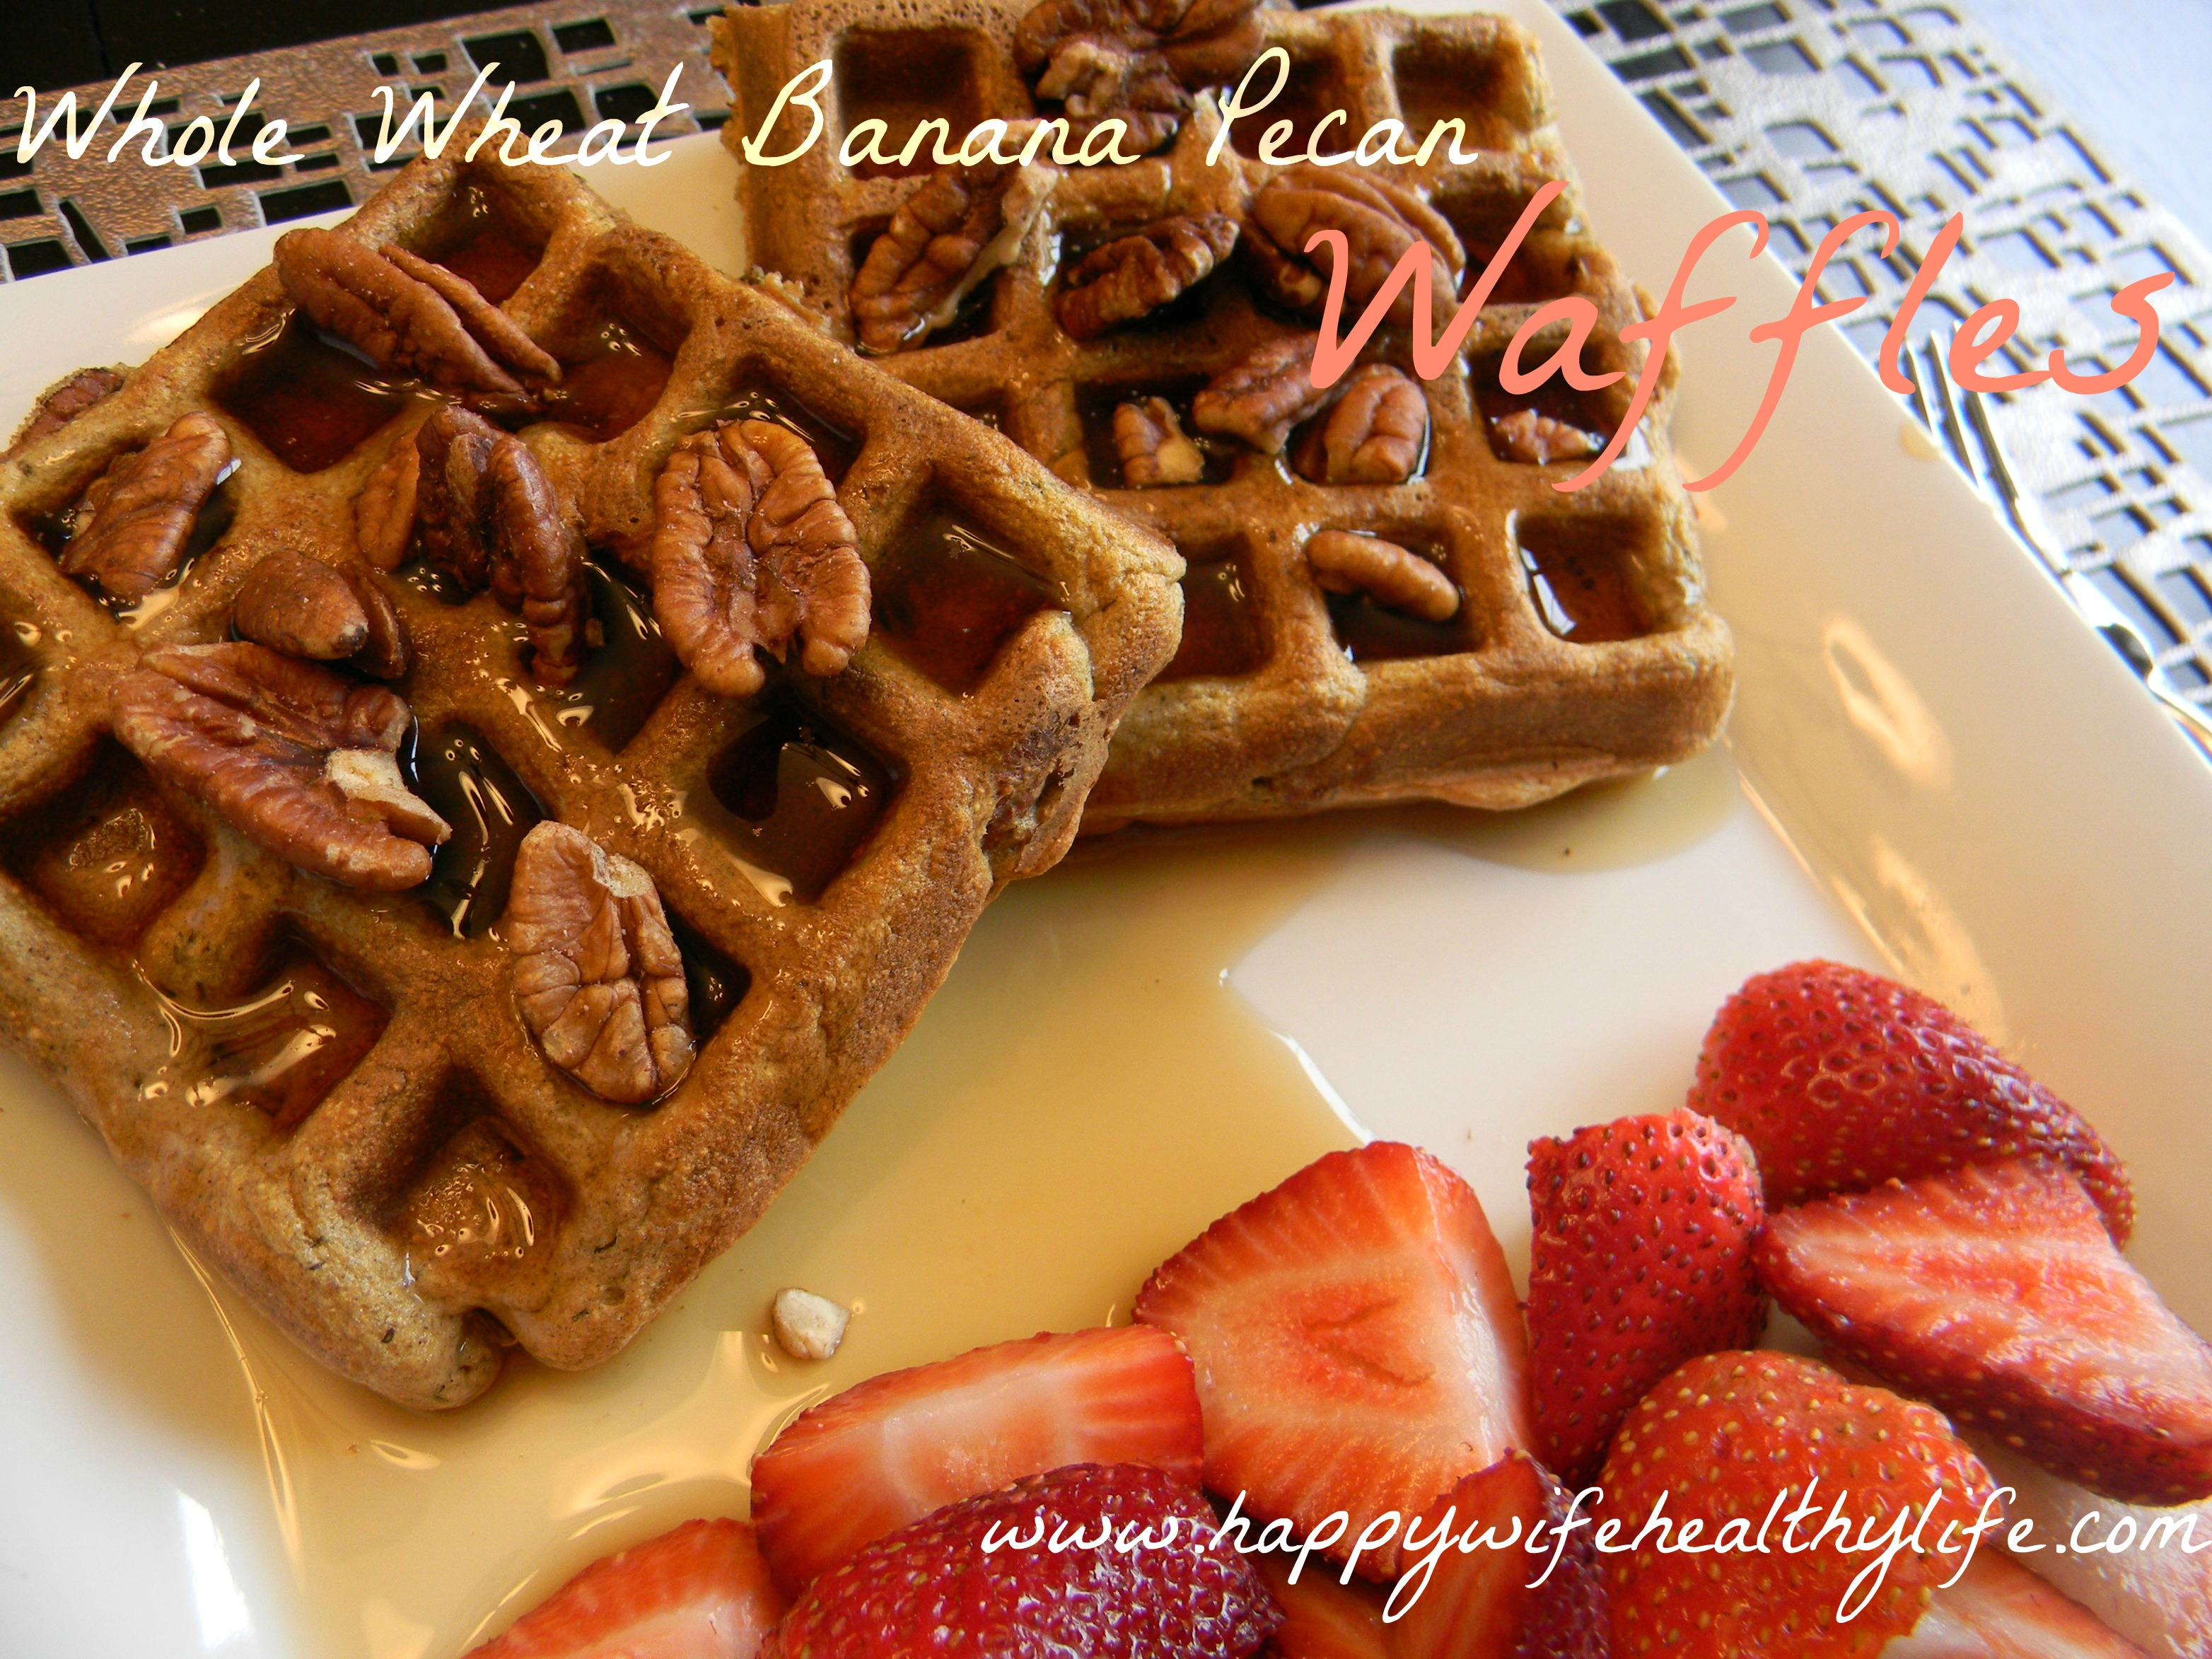 What is the most popular brunch recipe in your house? What type/brand ...